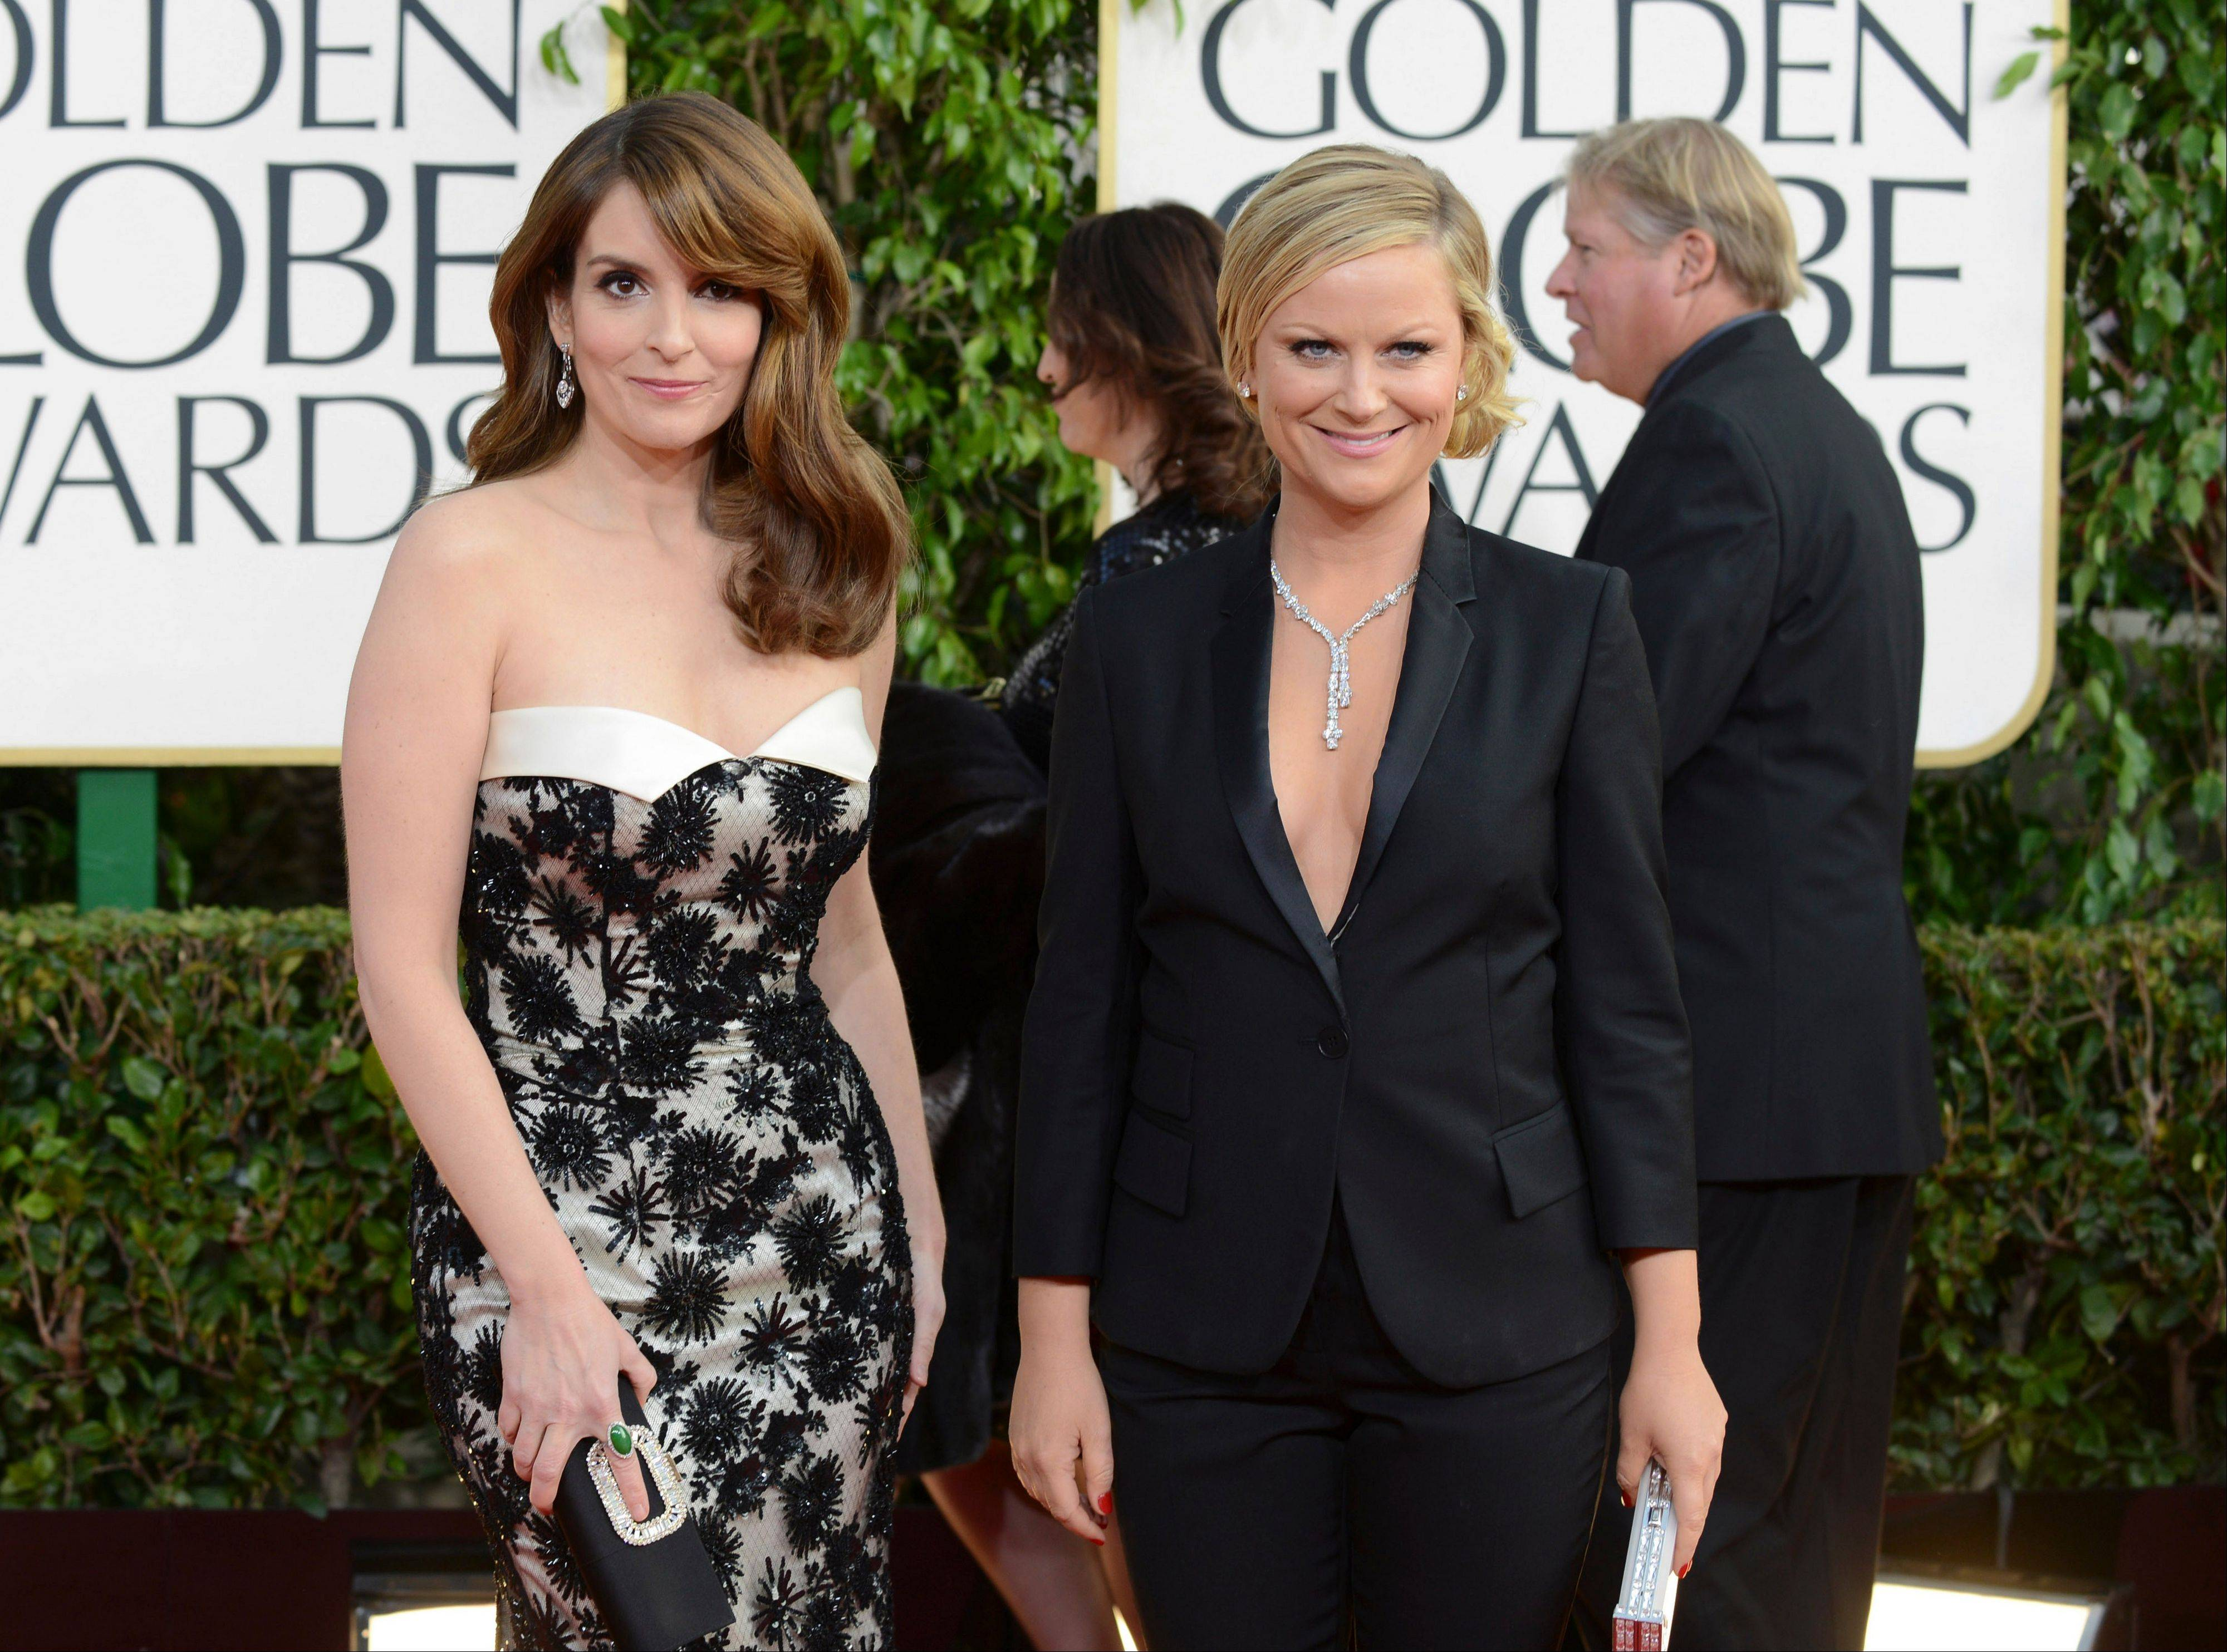 Images: Golden Globes arrivals